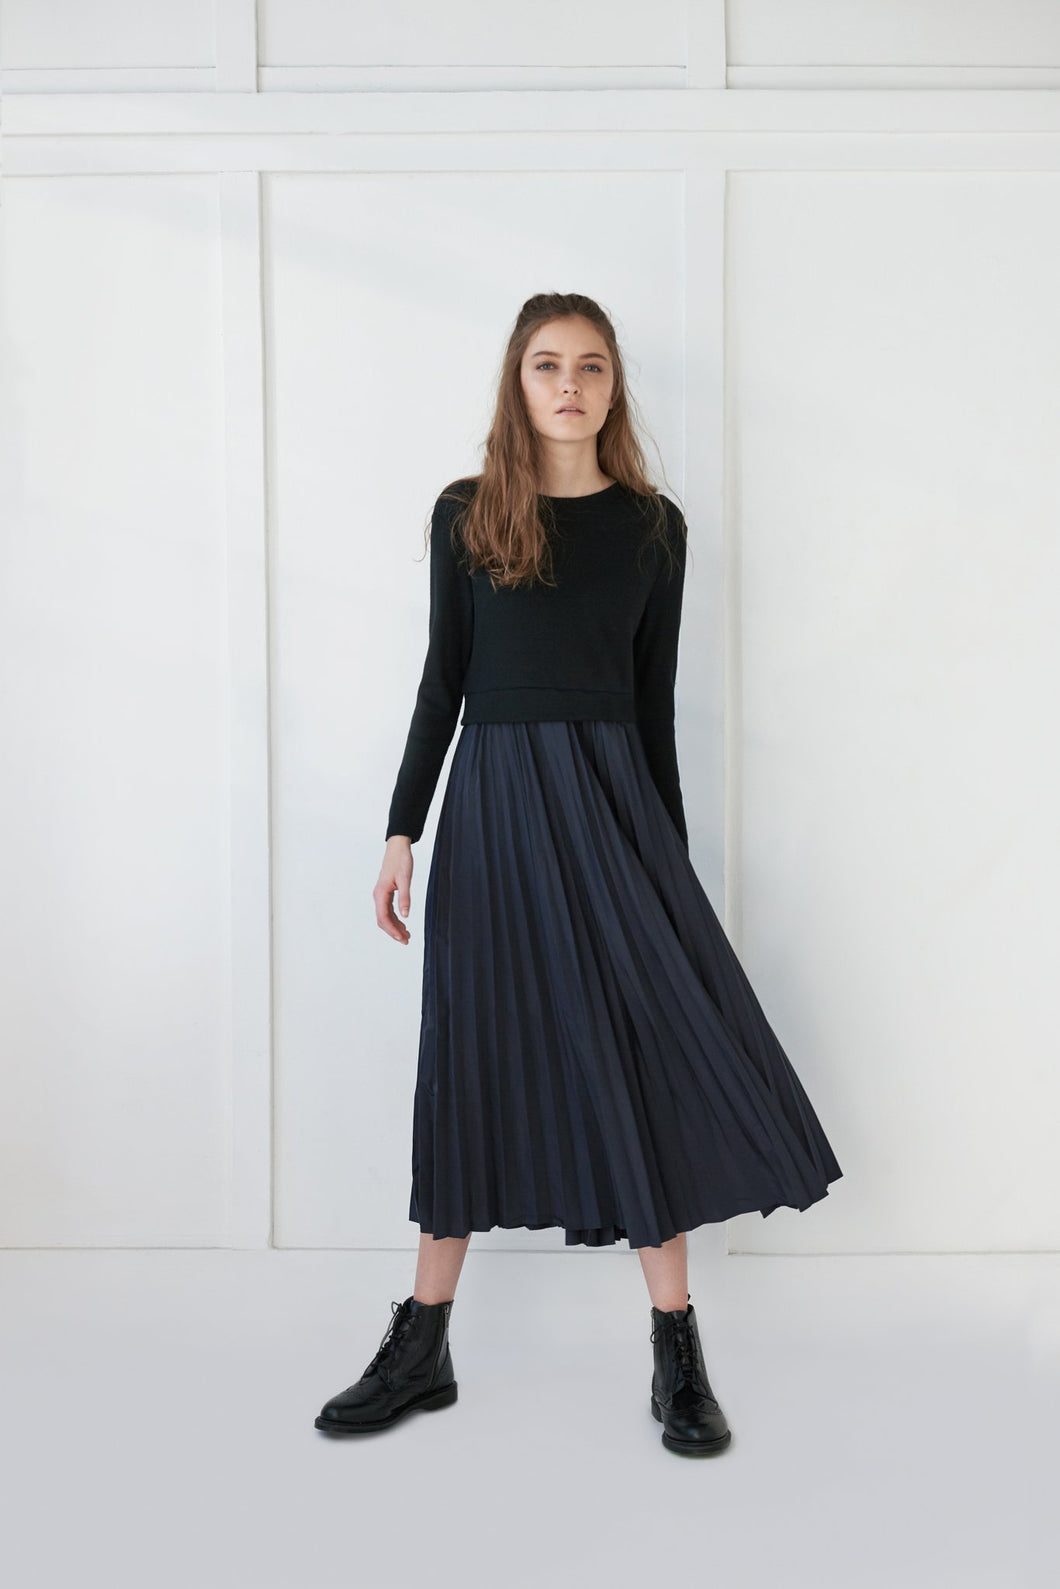 Pleated Midi Sweater Dress - Unaya women's modest tops skirts dresses jewish girls conservative clothing fashion apparel